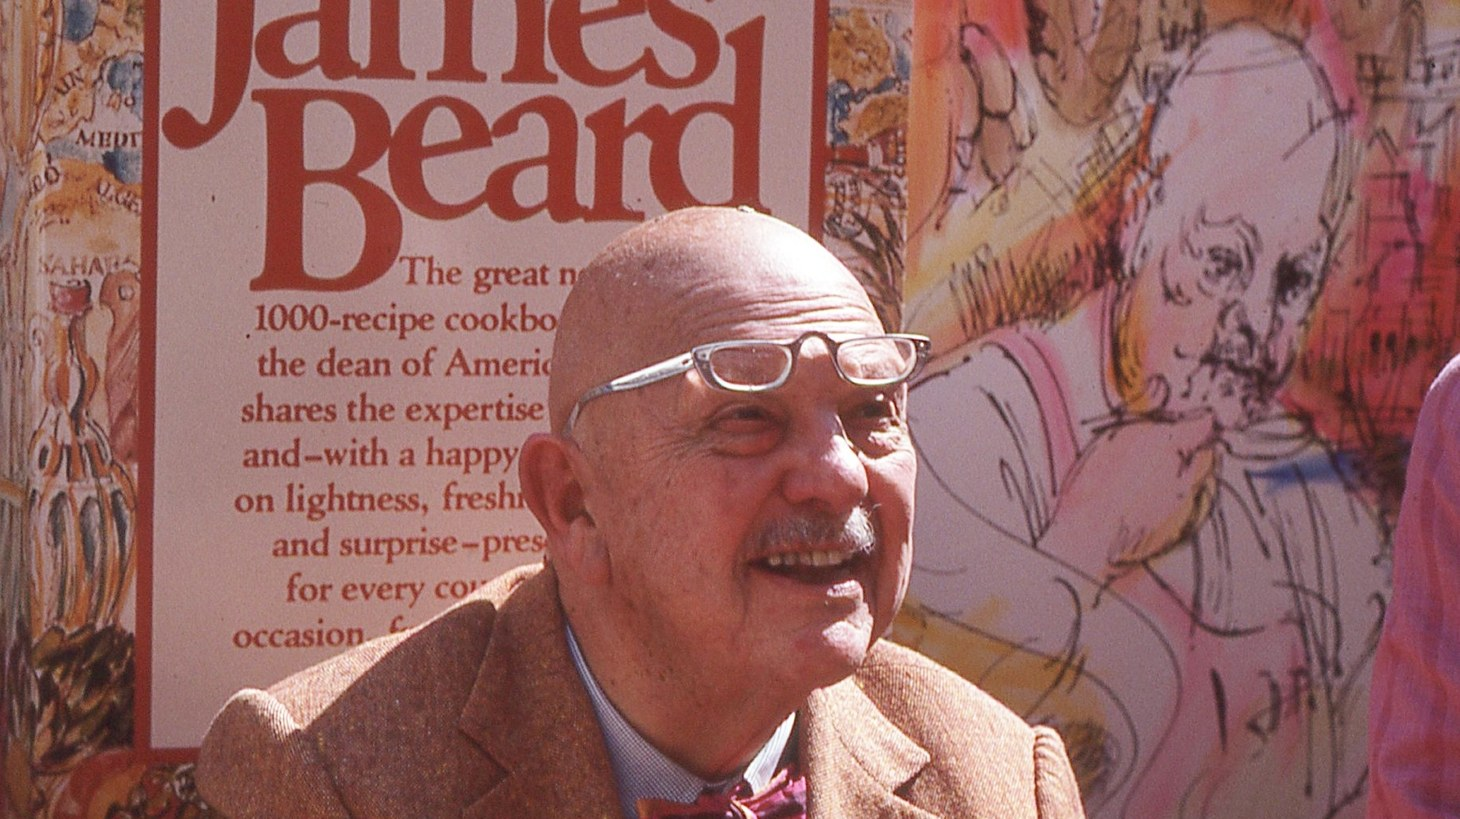 In pursuit of becoming an operatic tenor, James Beard discovered he had a knack for writing about food and teaching America to cook.